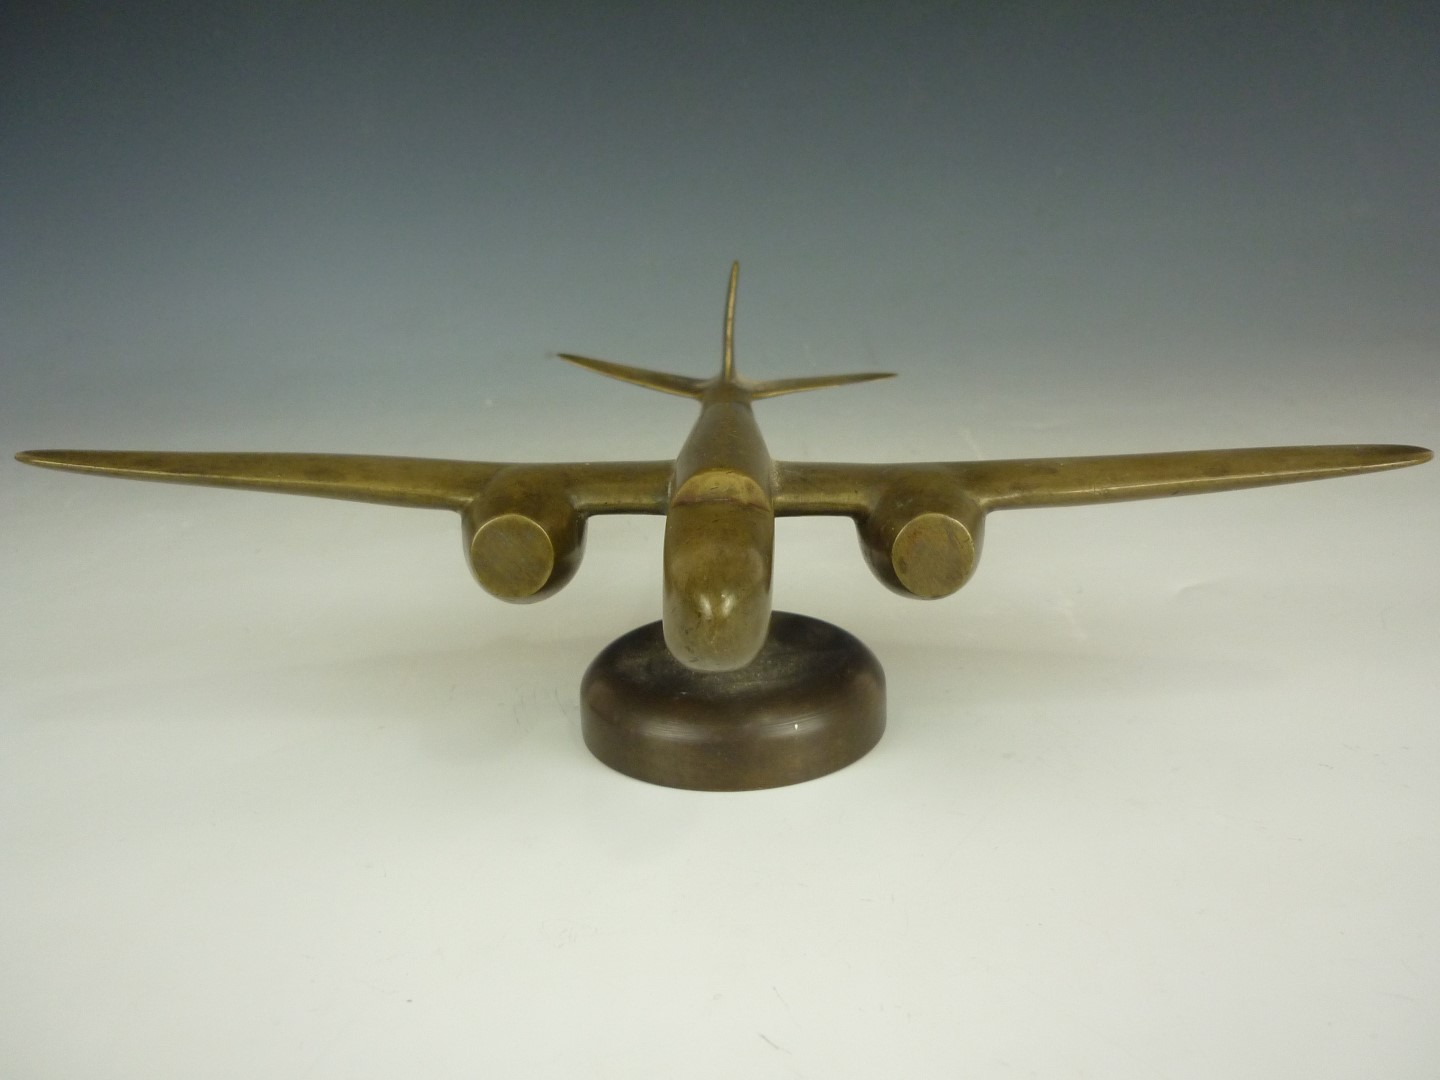 Lot 75 - A Second World War period brass stylized model of a two-engined bomber